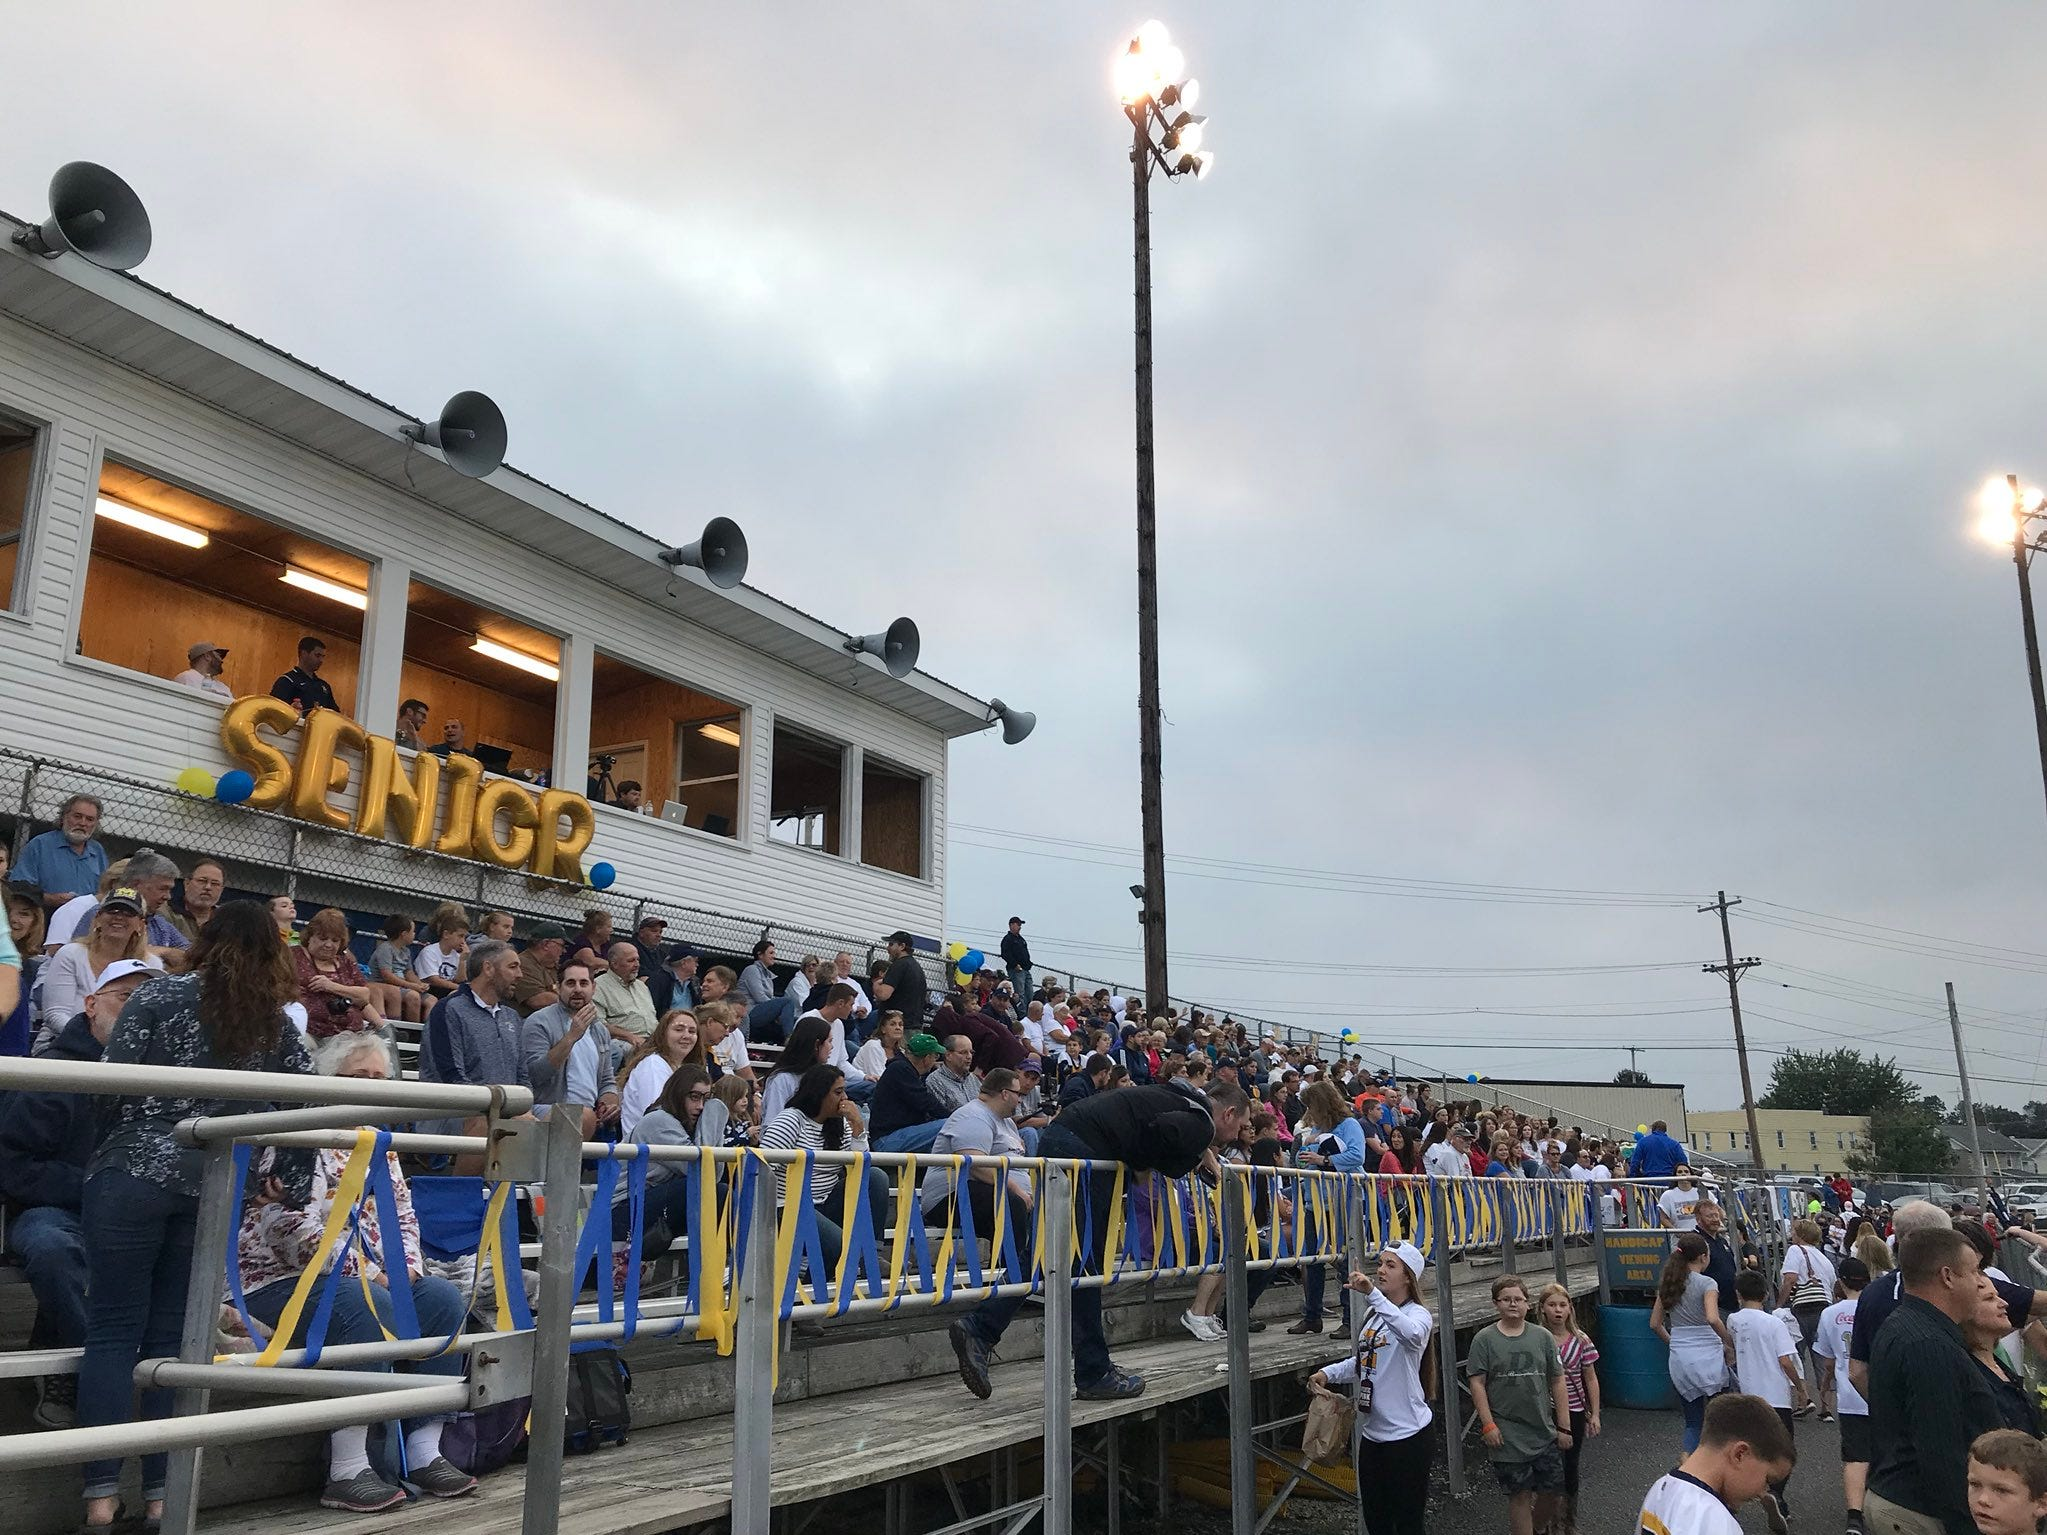 Fans turned out to watch Delone Catholic take on Littlestown on Friday, Sept. 21, 2018.